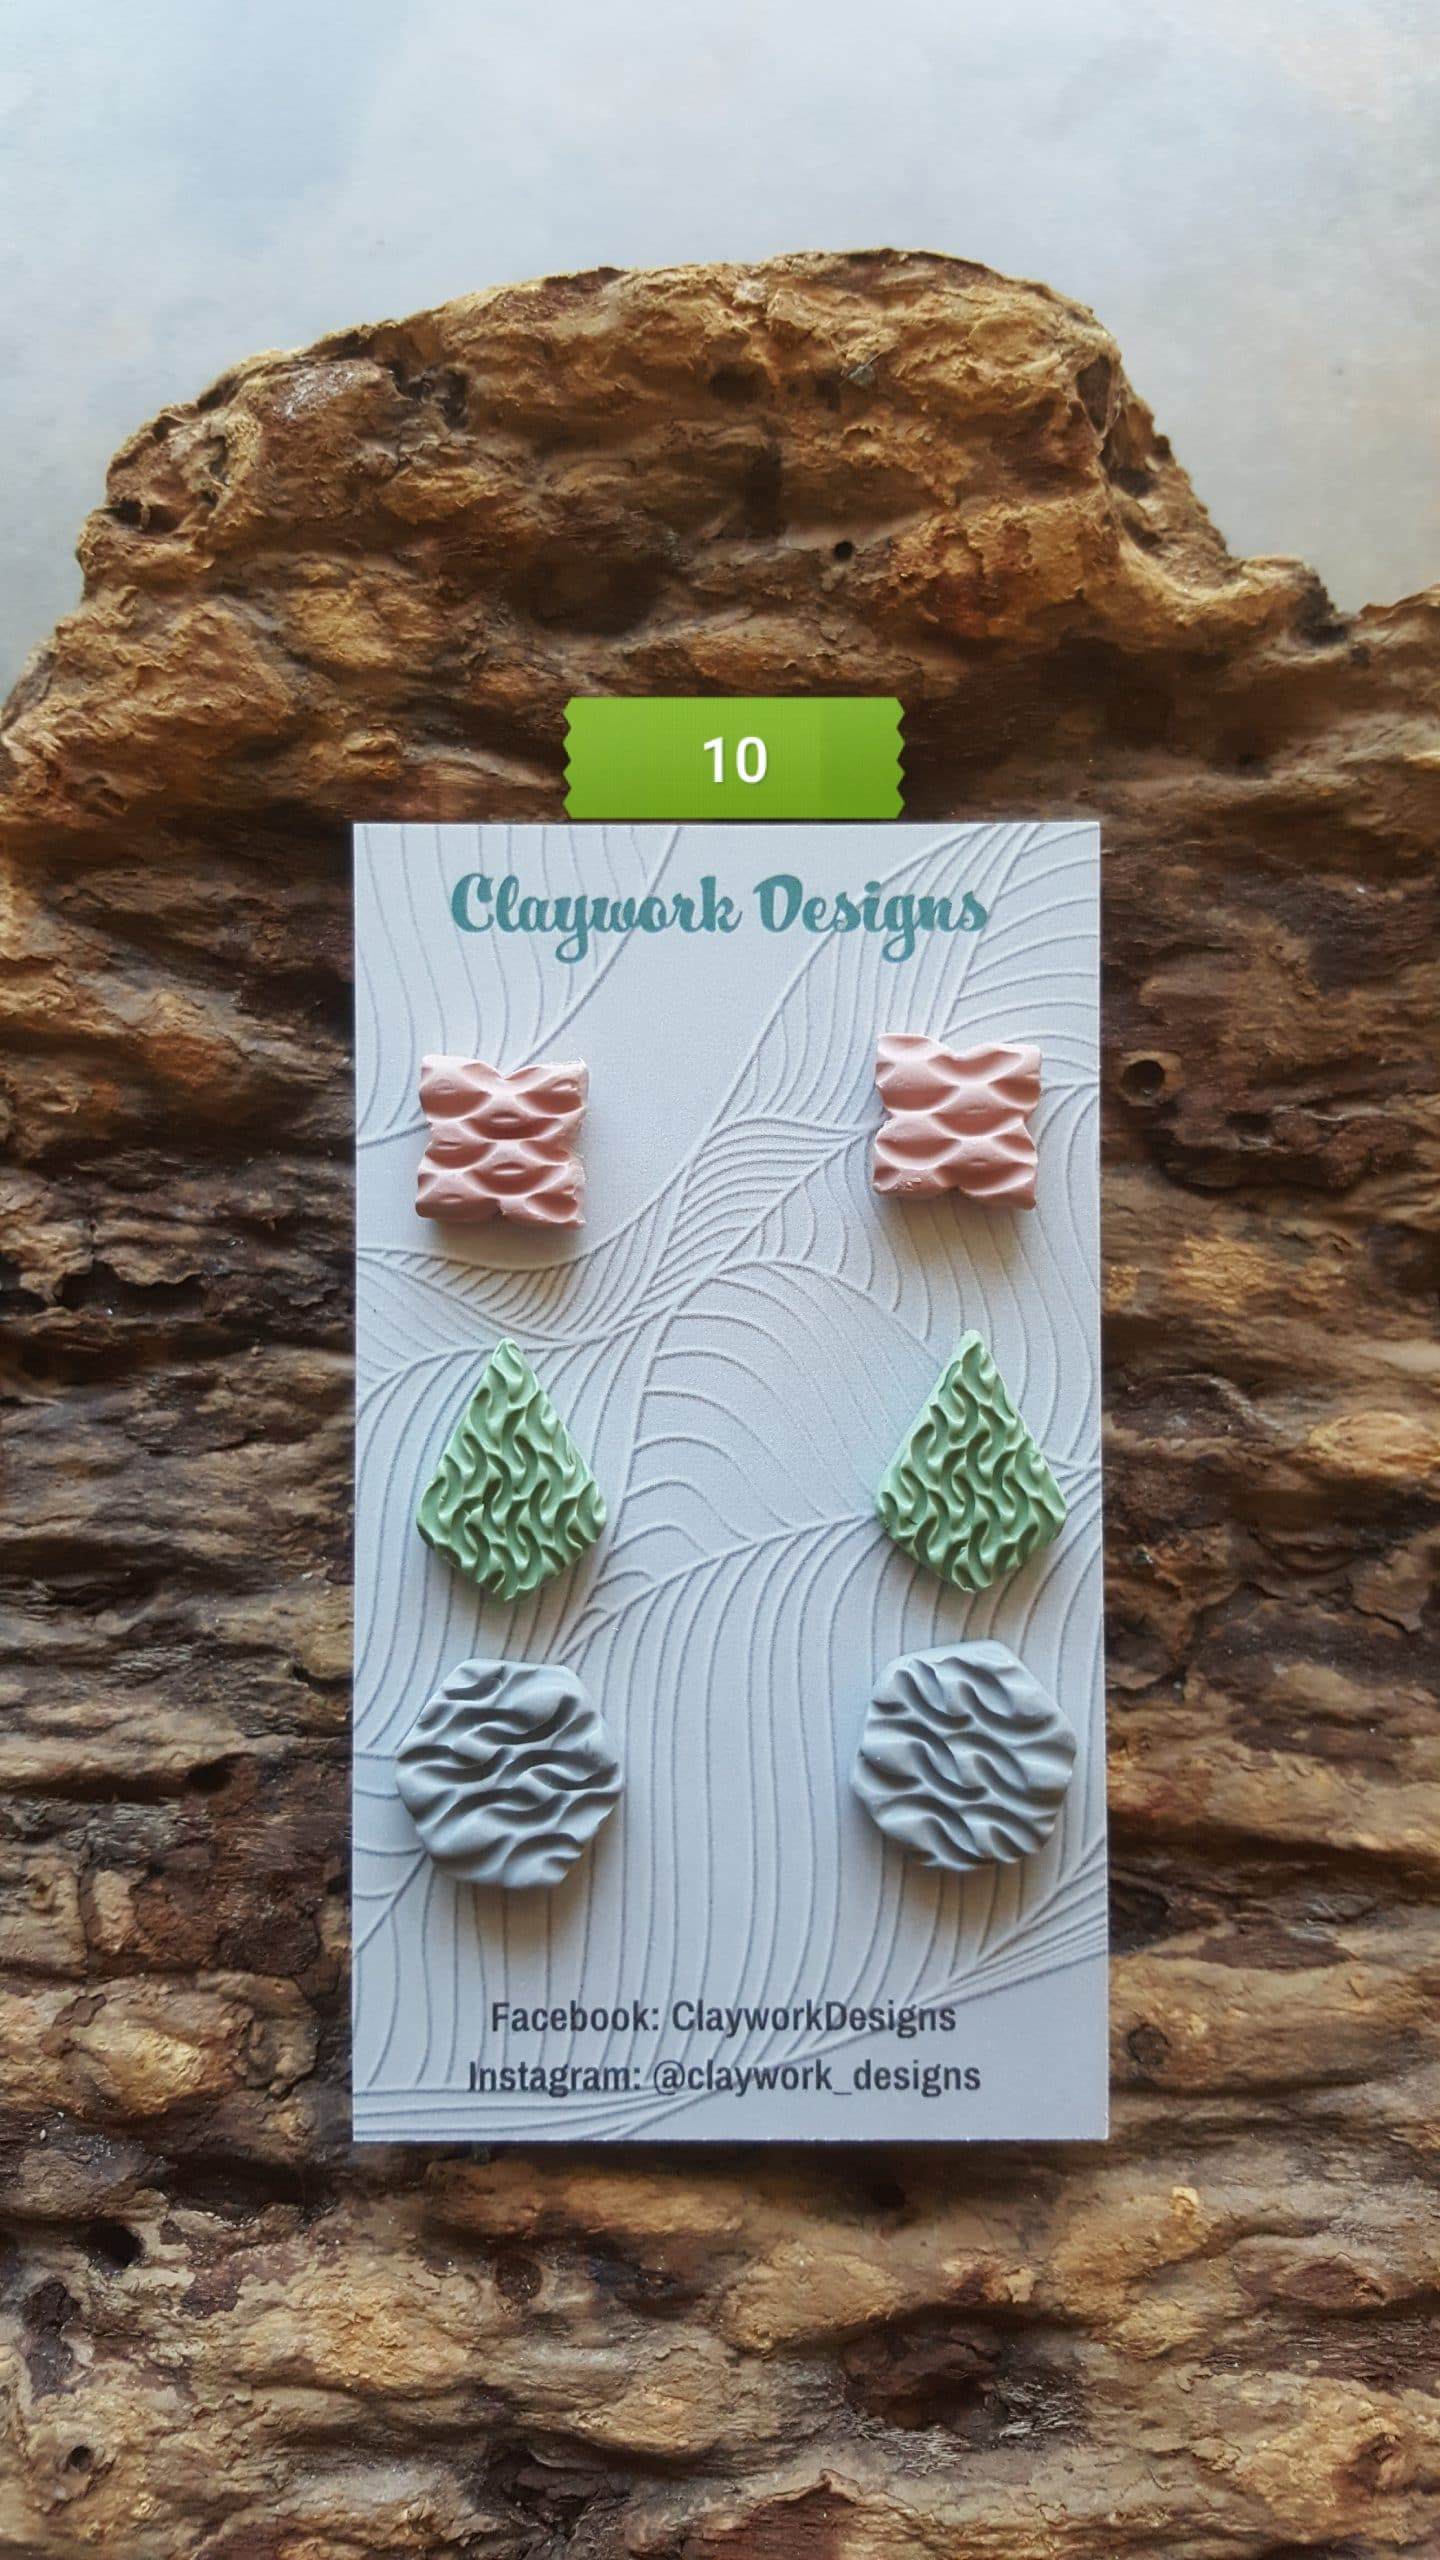 Wirework Designs | Handcrafted chainmaille jewellery and chainmaille products | Chainmaille Weave Stud Earring - 3 Packs | 20210620_172418